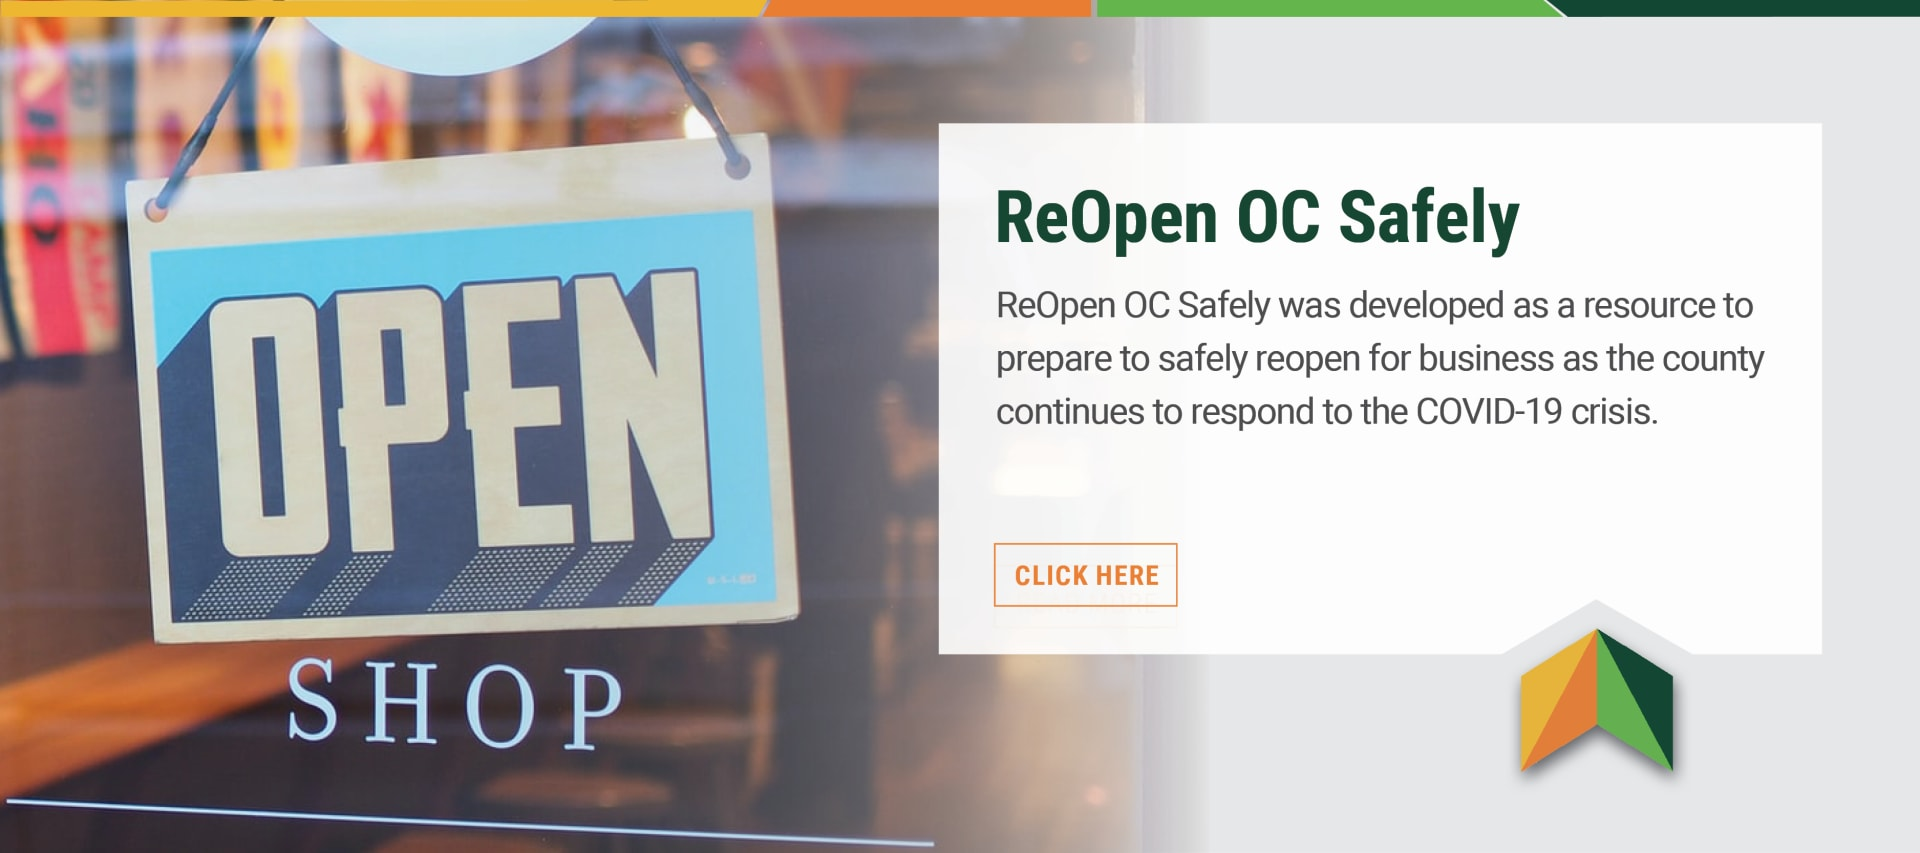 02-reopen-oc-safely-w1920.jpg